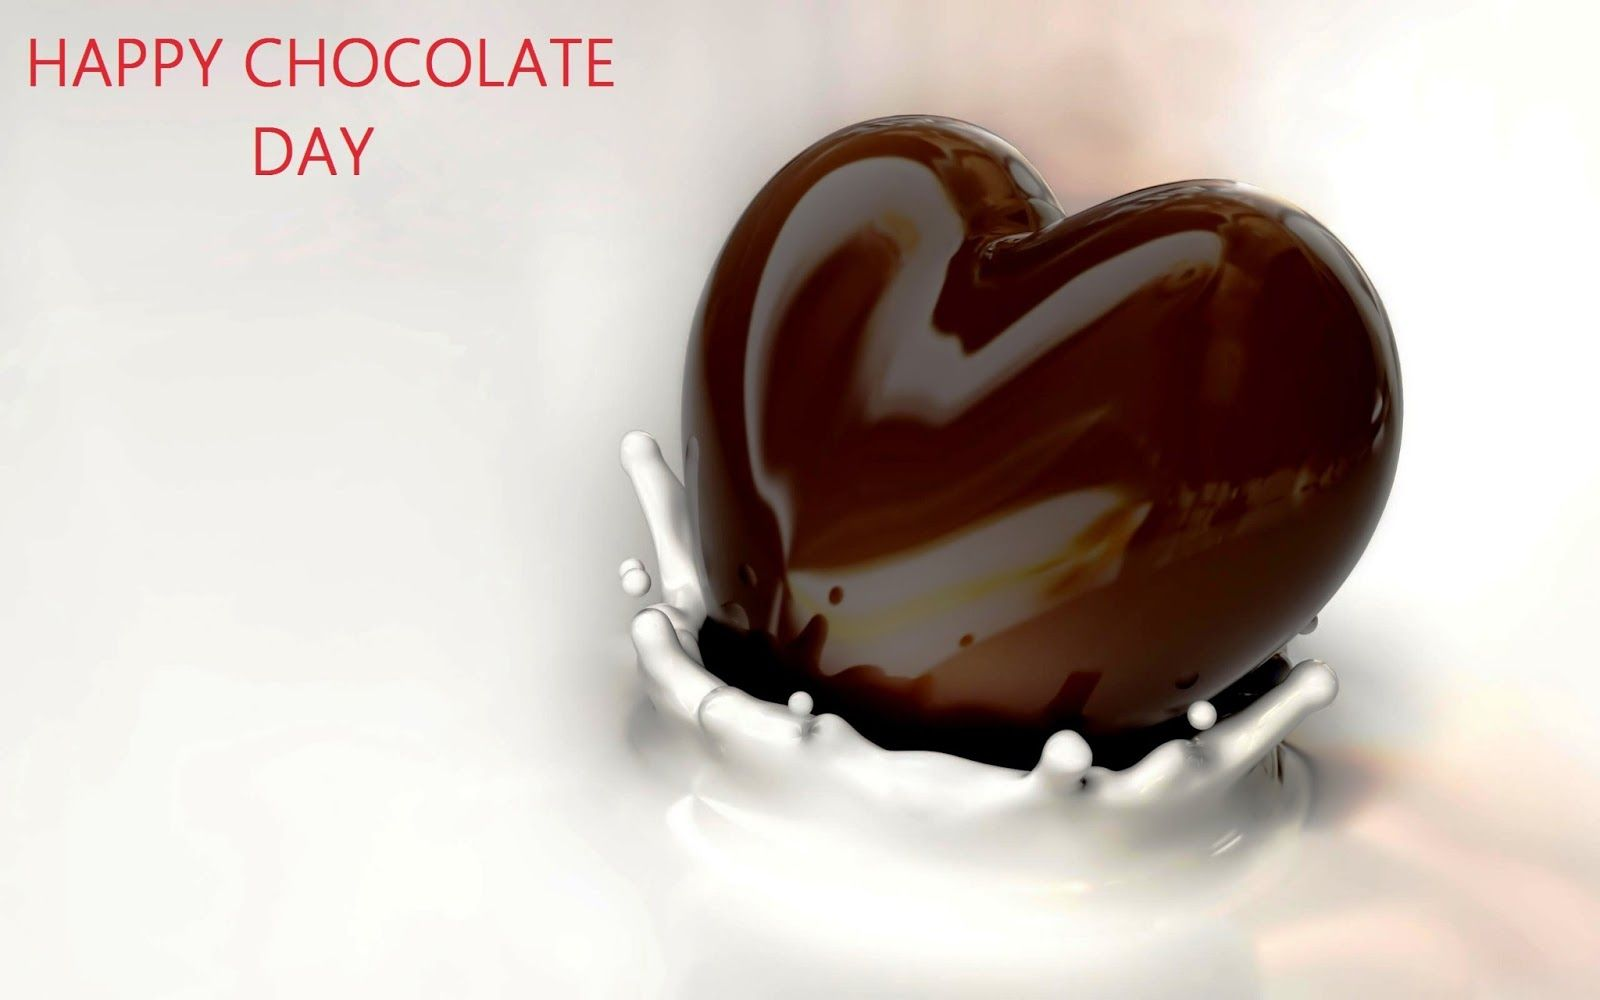 Chocolate Day Images Happy Day 2015 Happy Chocolate Day Chocolate Day Images Chocolate Day Happy chocolate day pic download hd